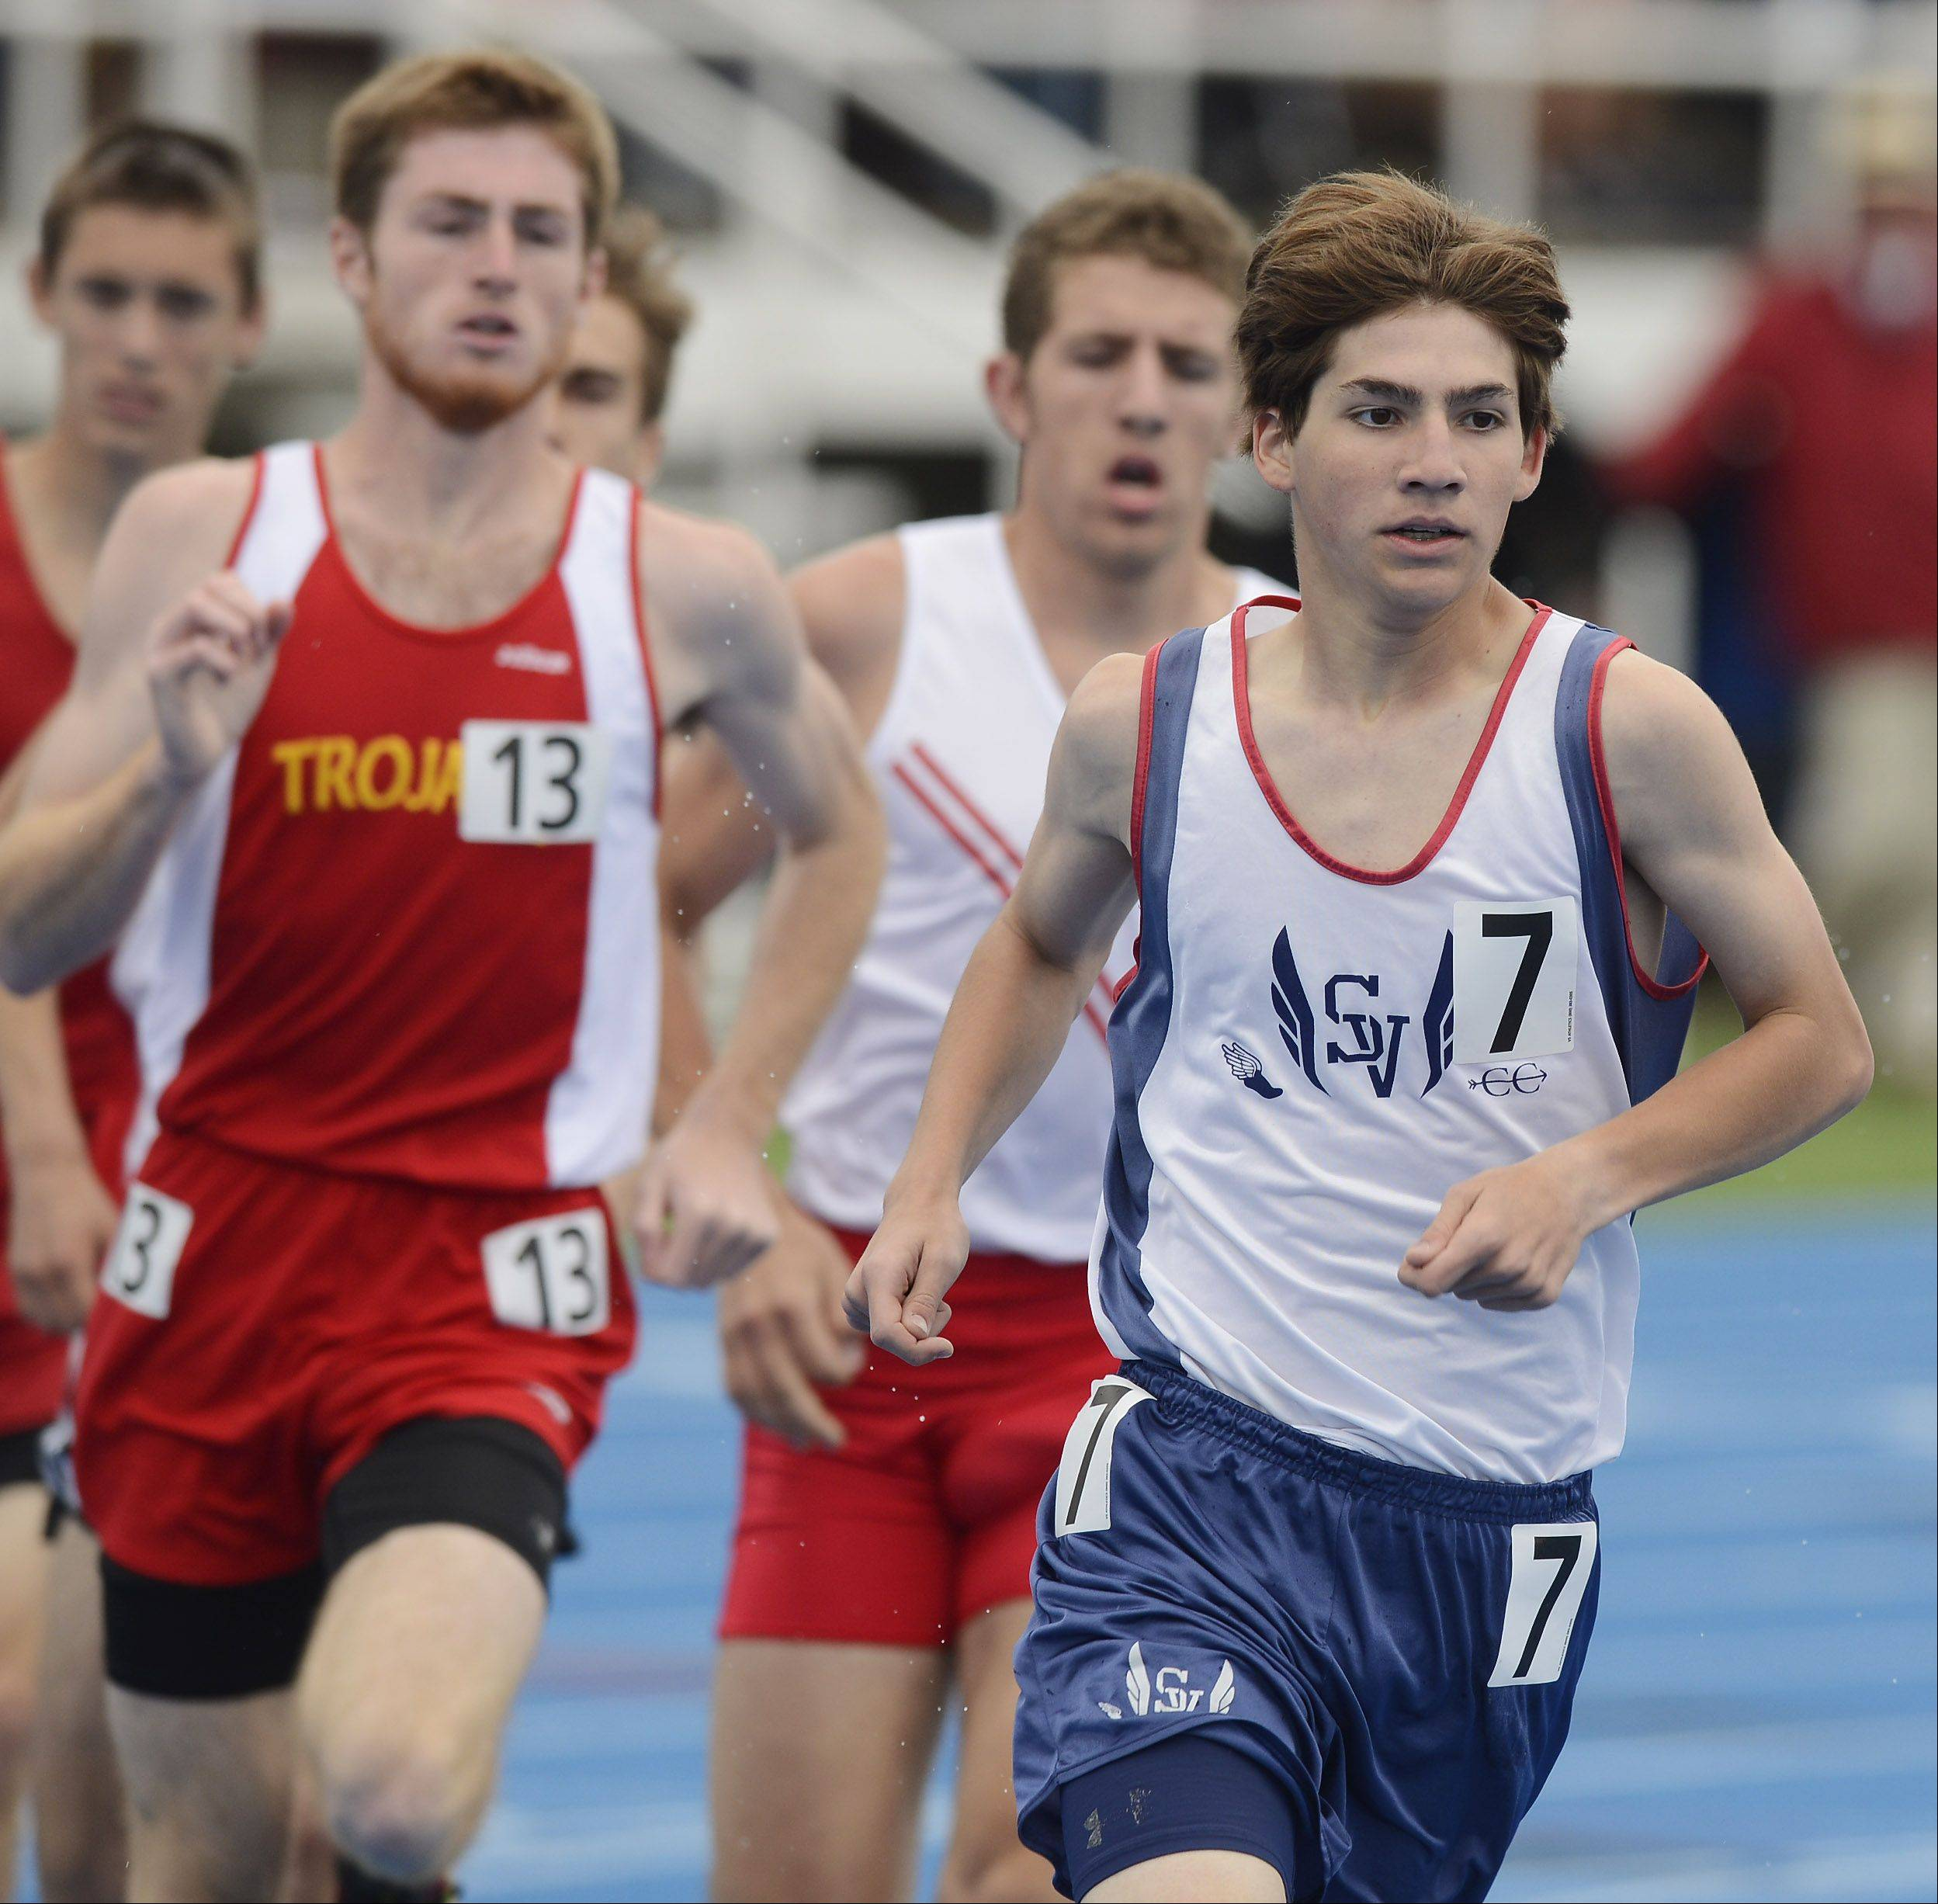 St. Viator's Nick Brey, right, competes in the Class 2A 3,200-meter run during the boys track state finals in Charleston on Saturday.